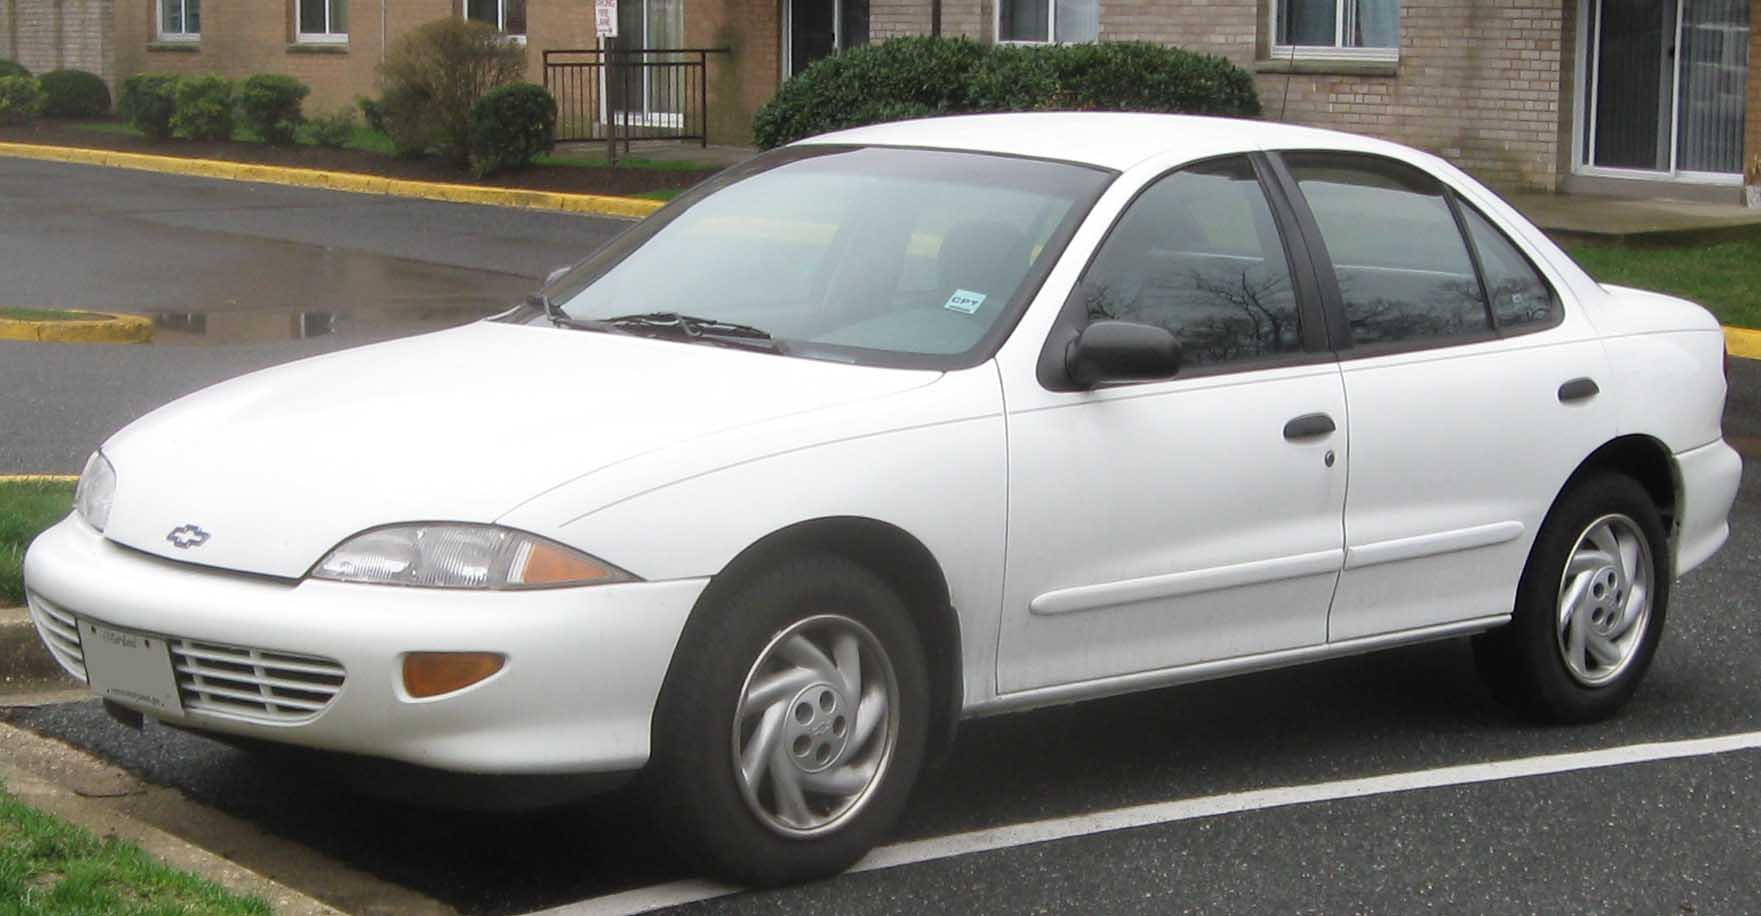 Cars chevrolet cavalier coupe (j) 2000 #2